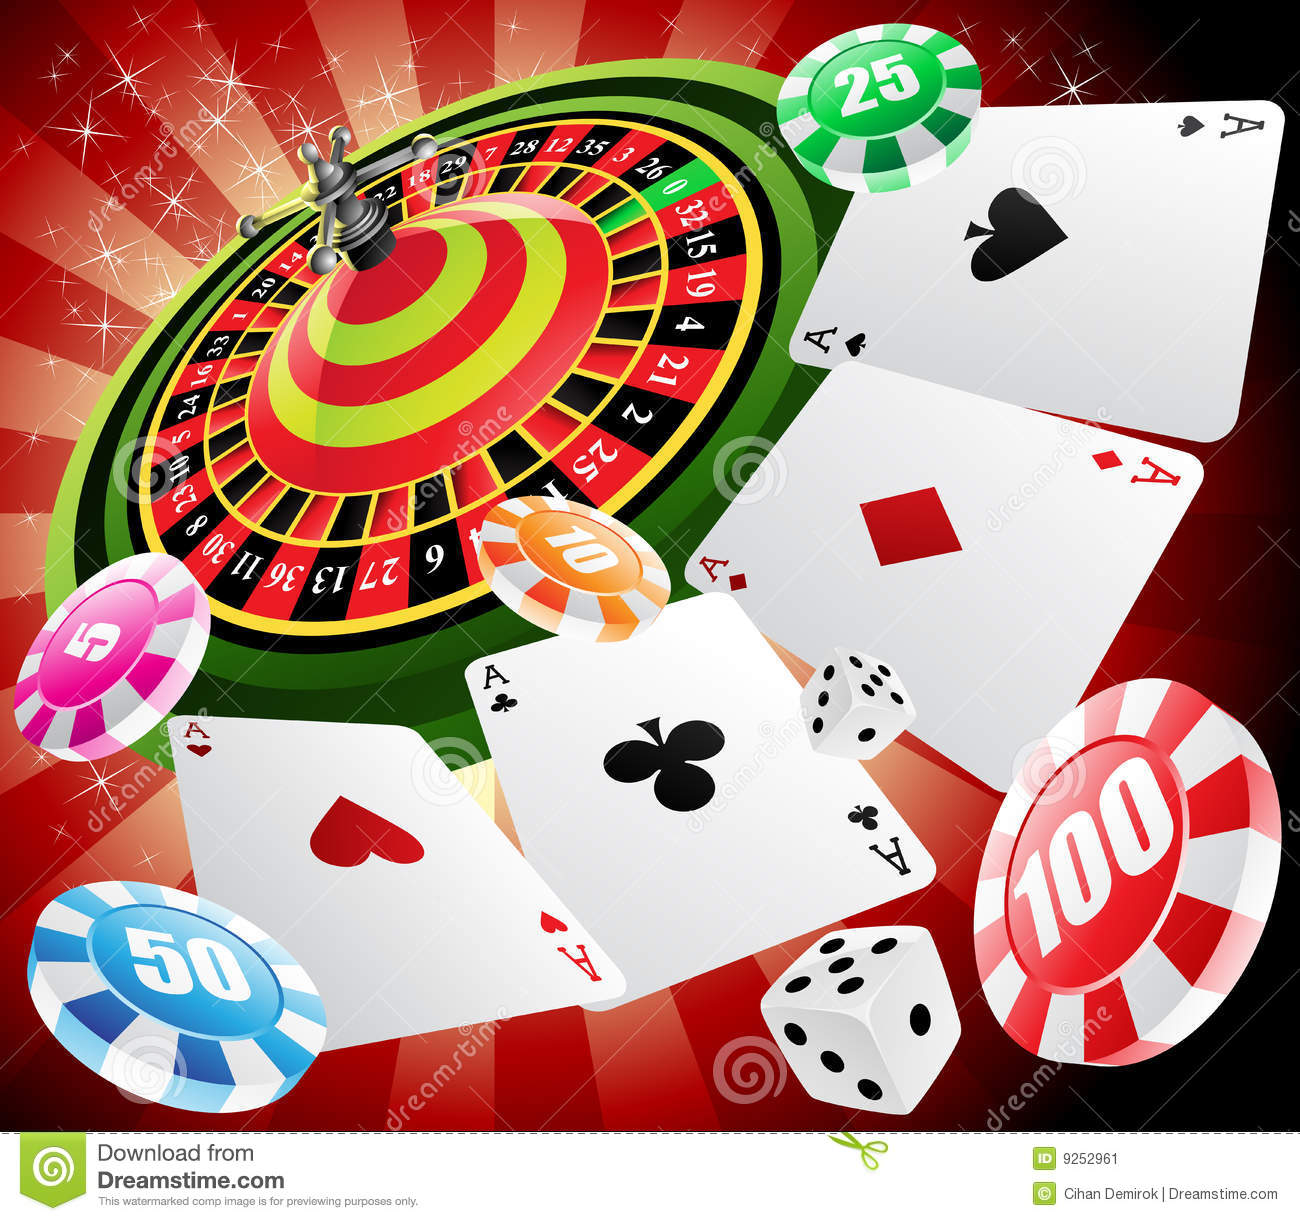 How to Gamble 79815